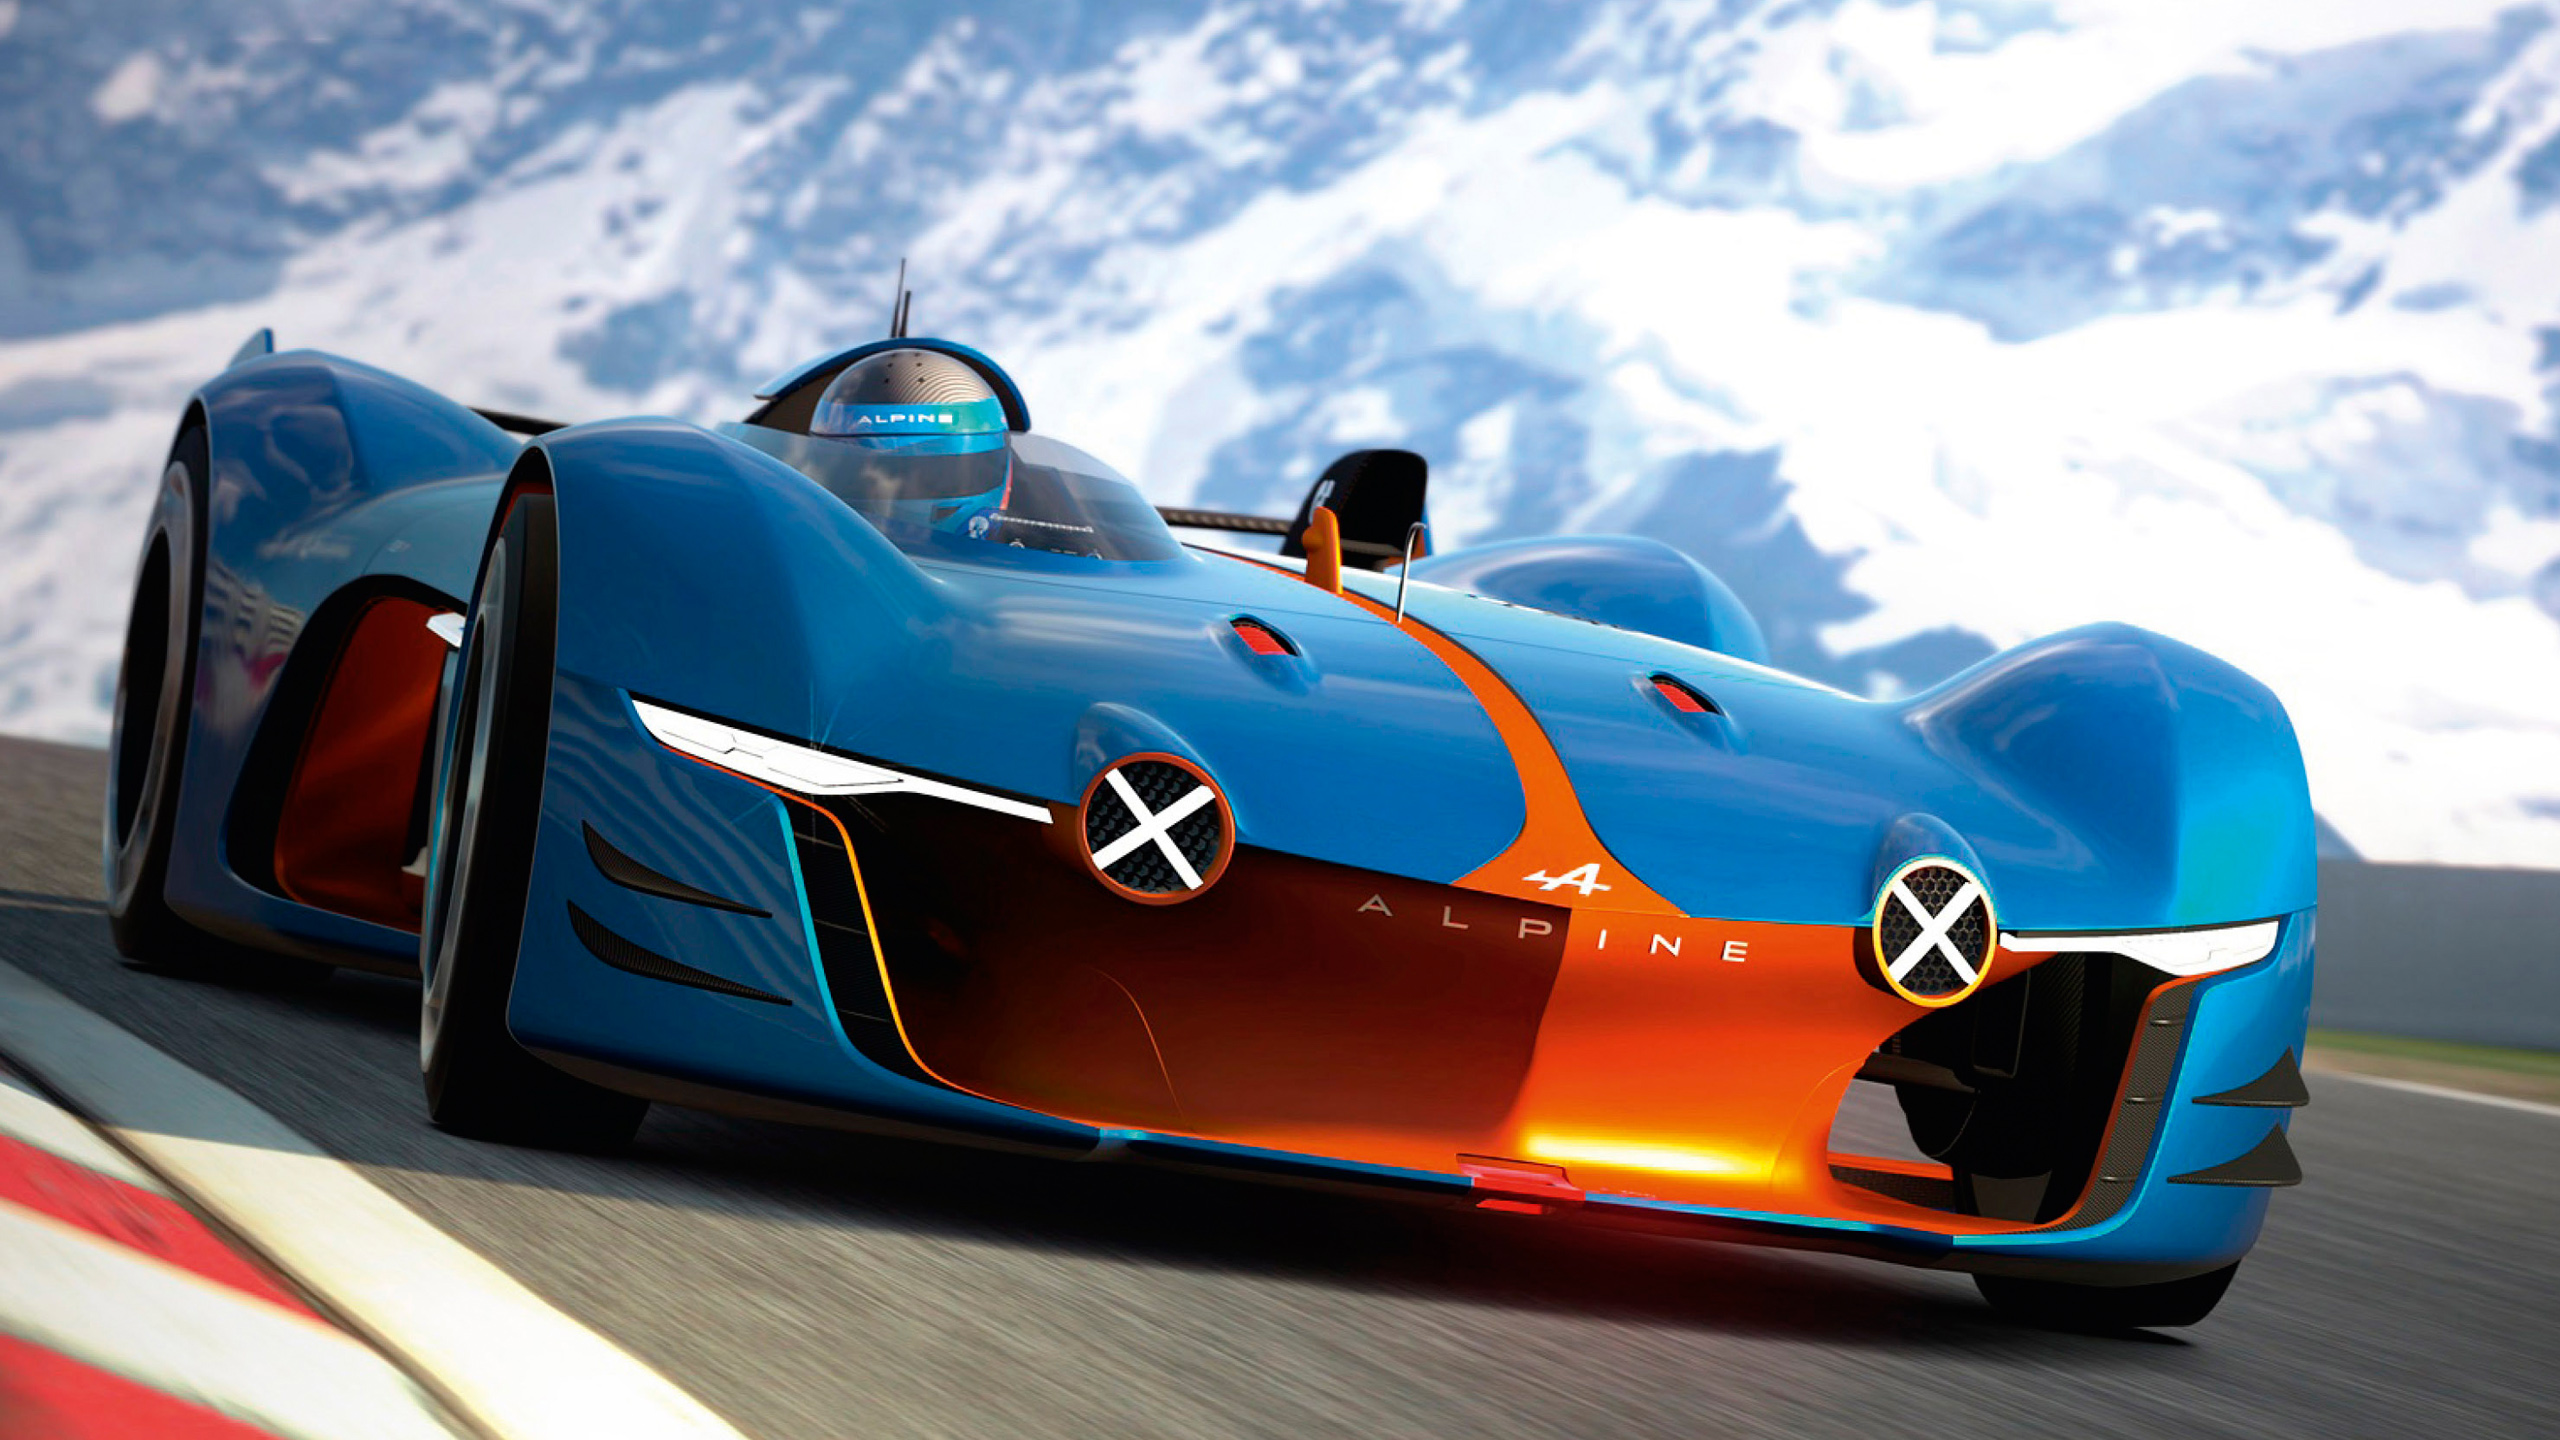 2015 renault alpine vision gran turismo 3 wallpaper hd car. Black Bedroom Furniture Sets. Home Design Ideas